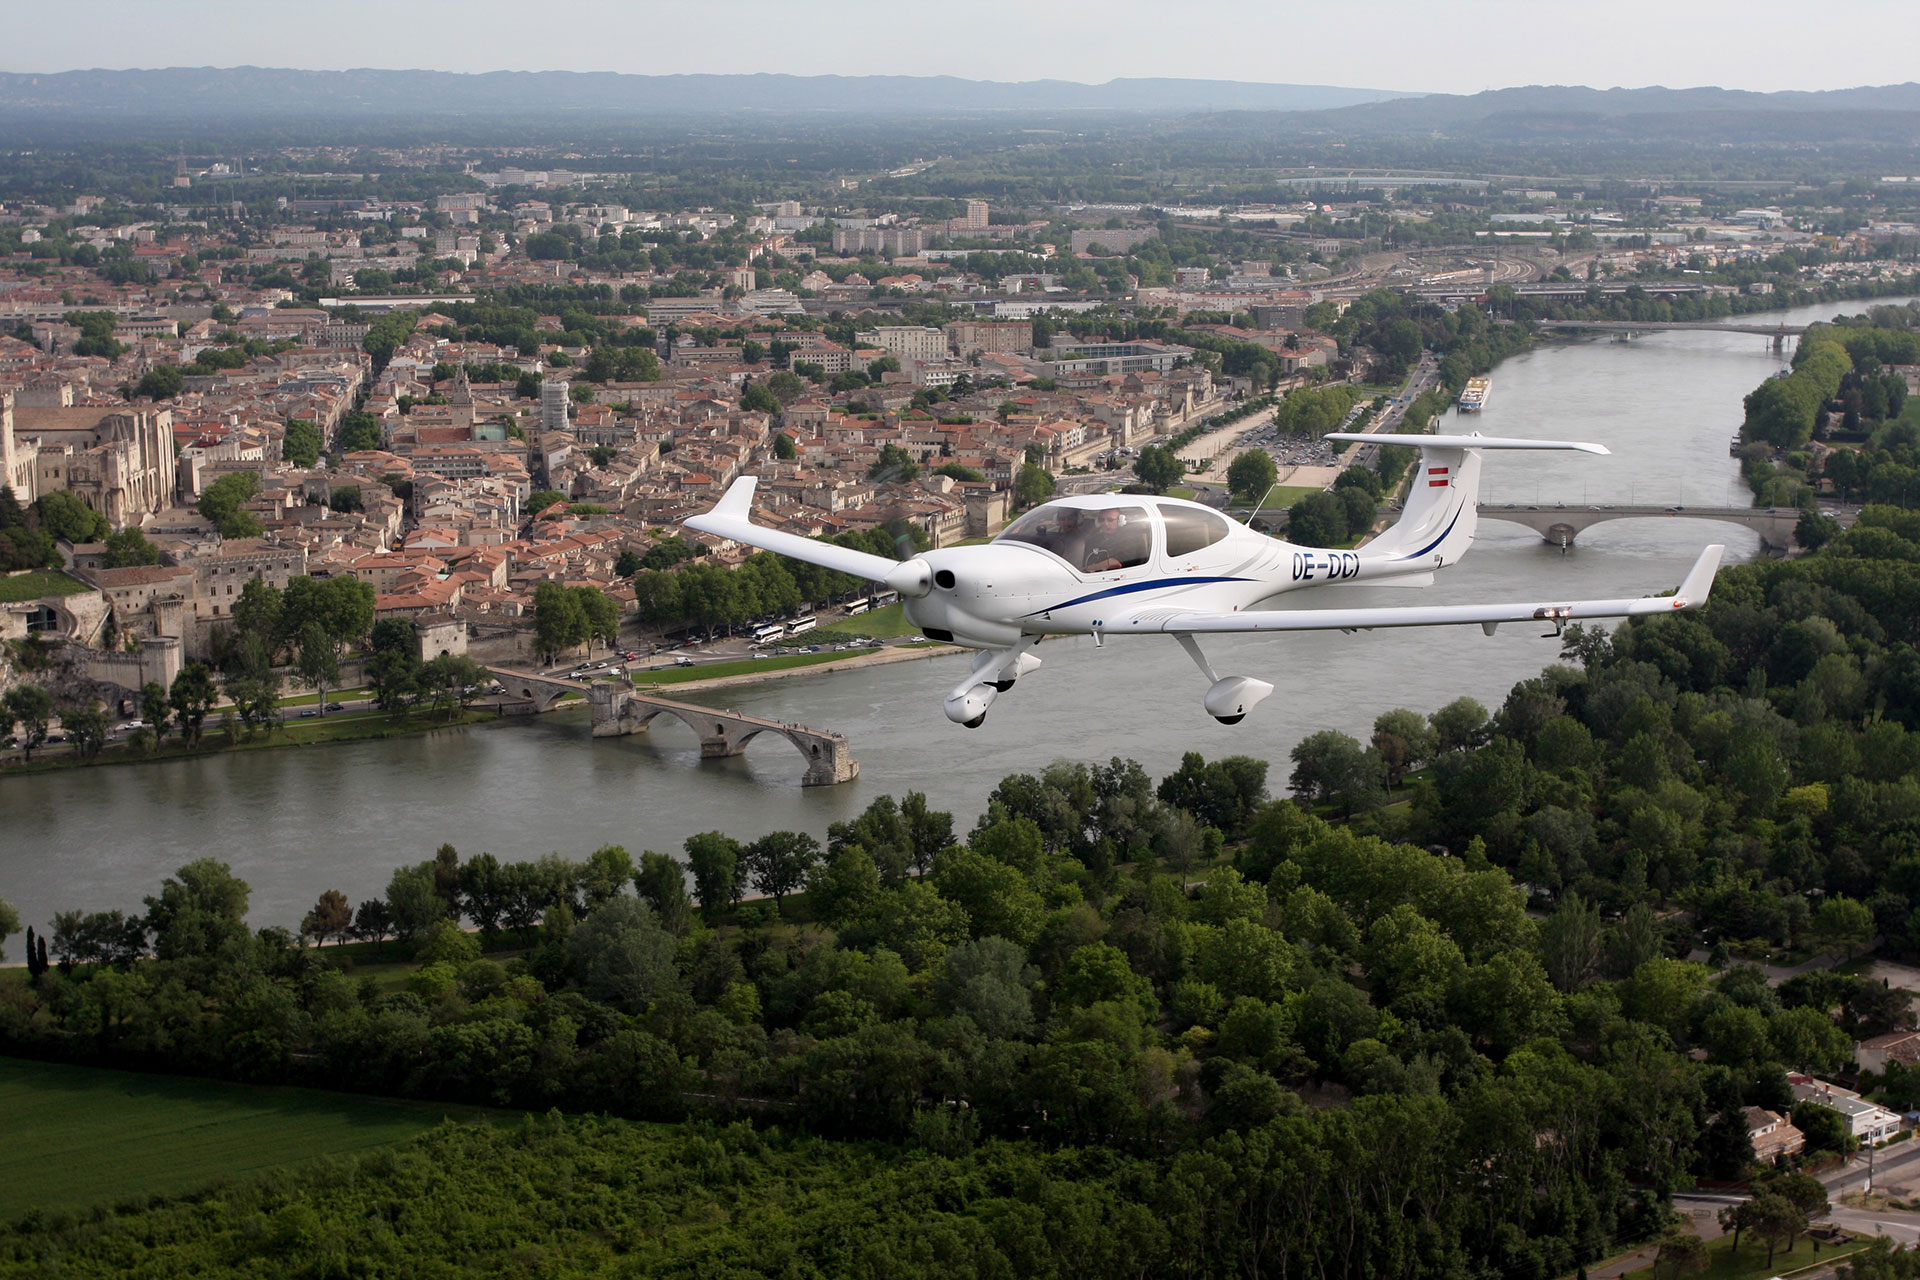 DA 40 - DIAMOND AIRCRAFT | ATA by Pelletier - Avignon